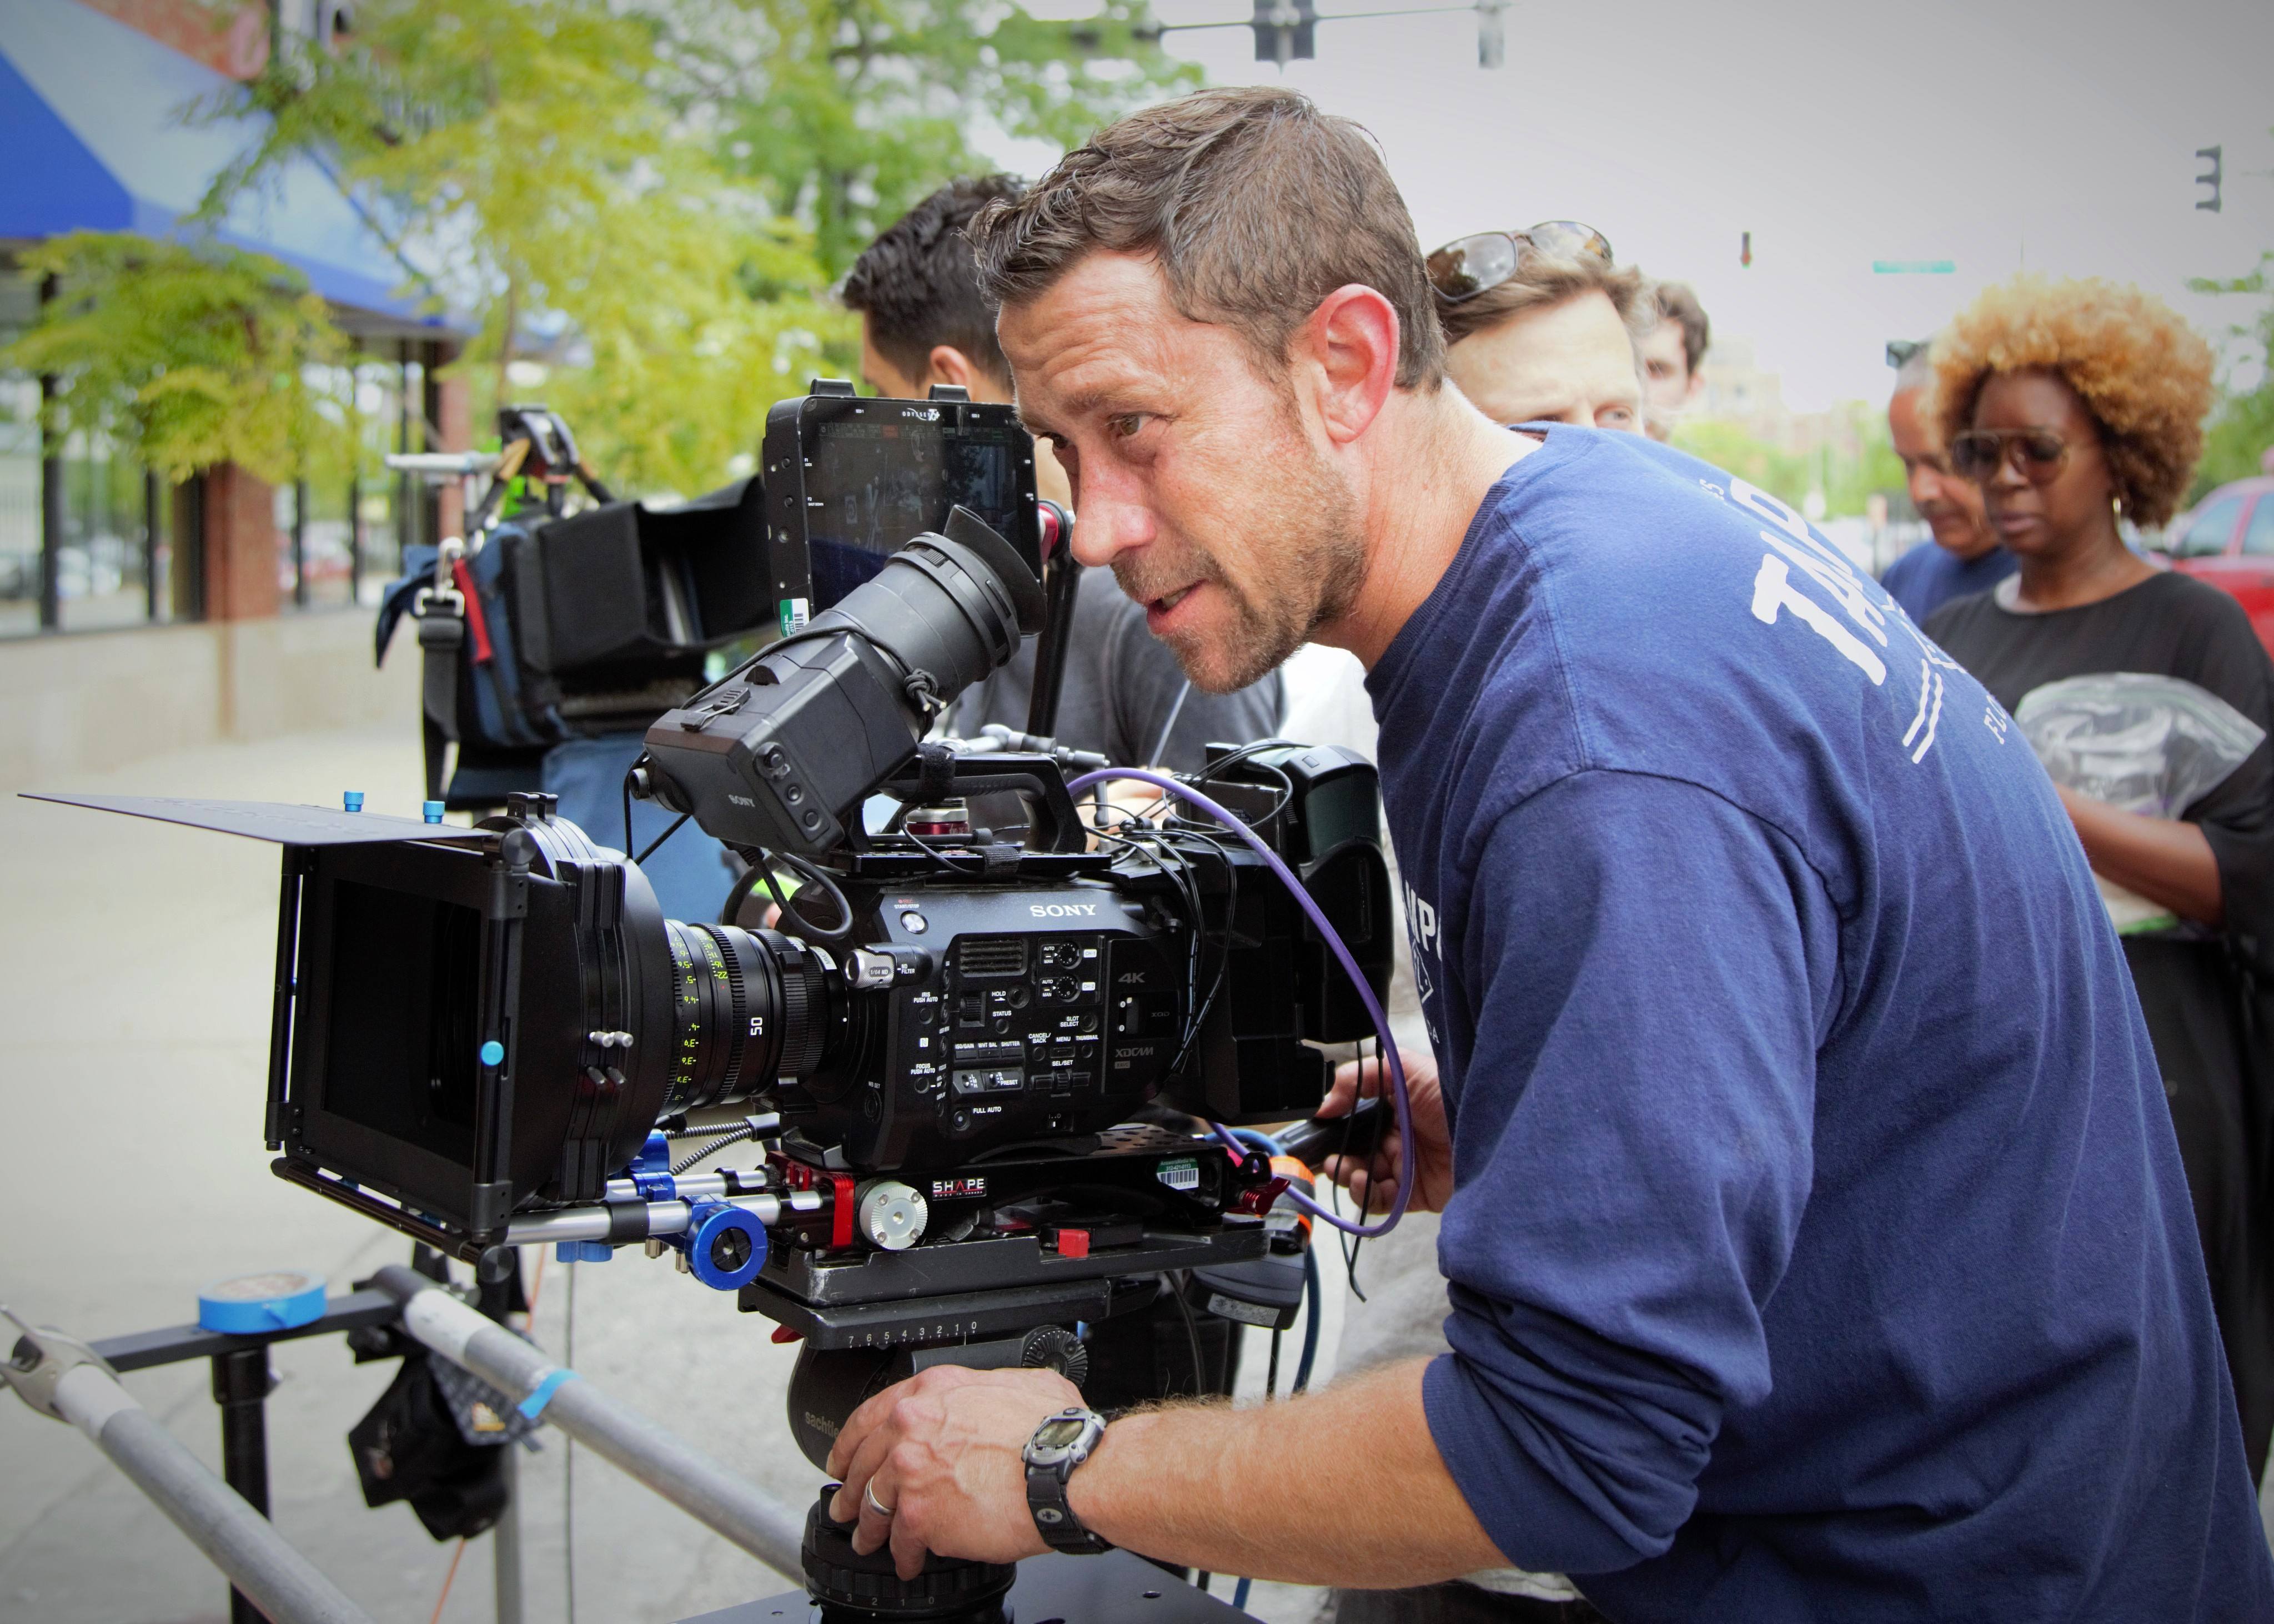 Director of Photography w/Gear